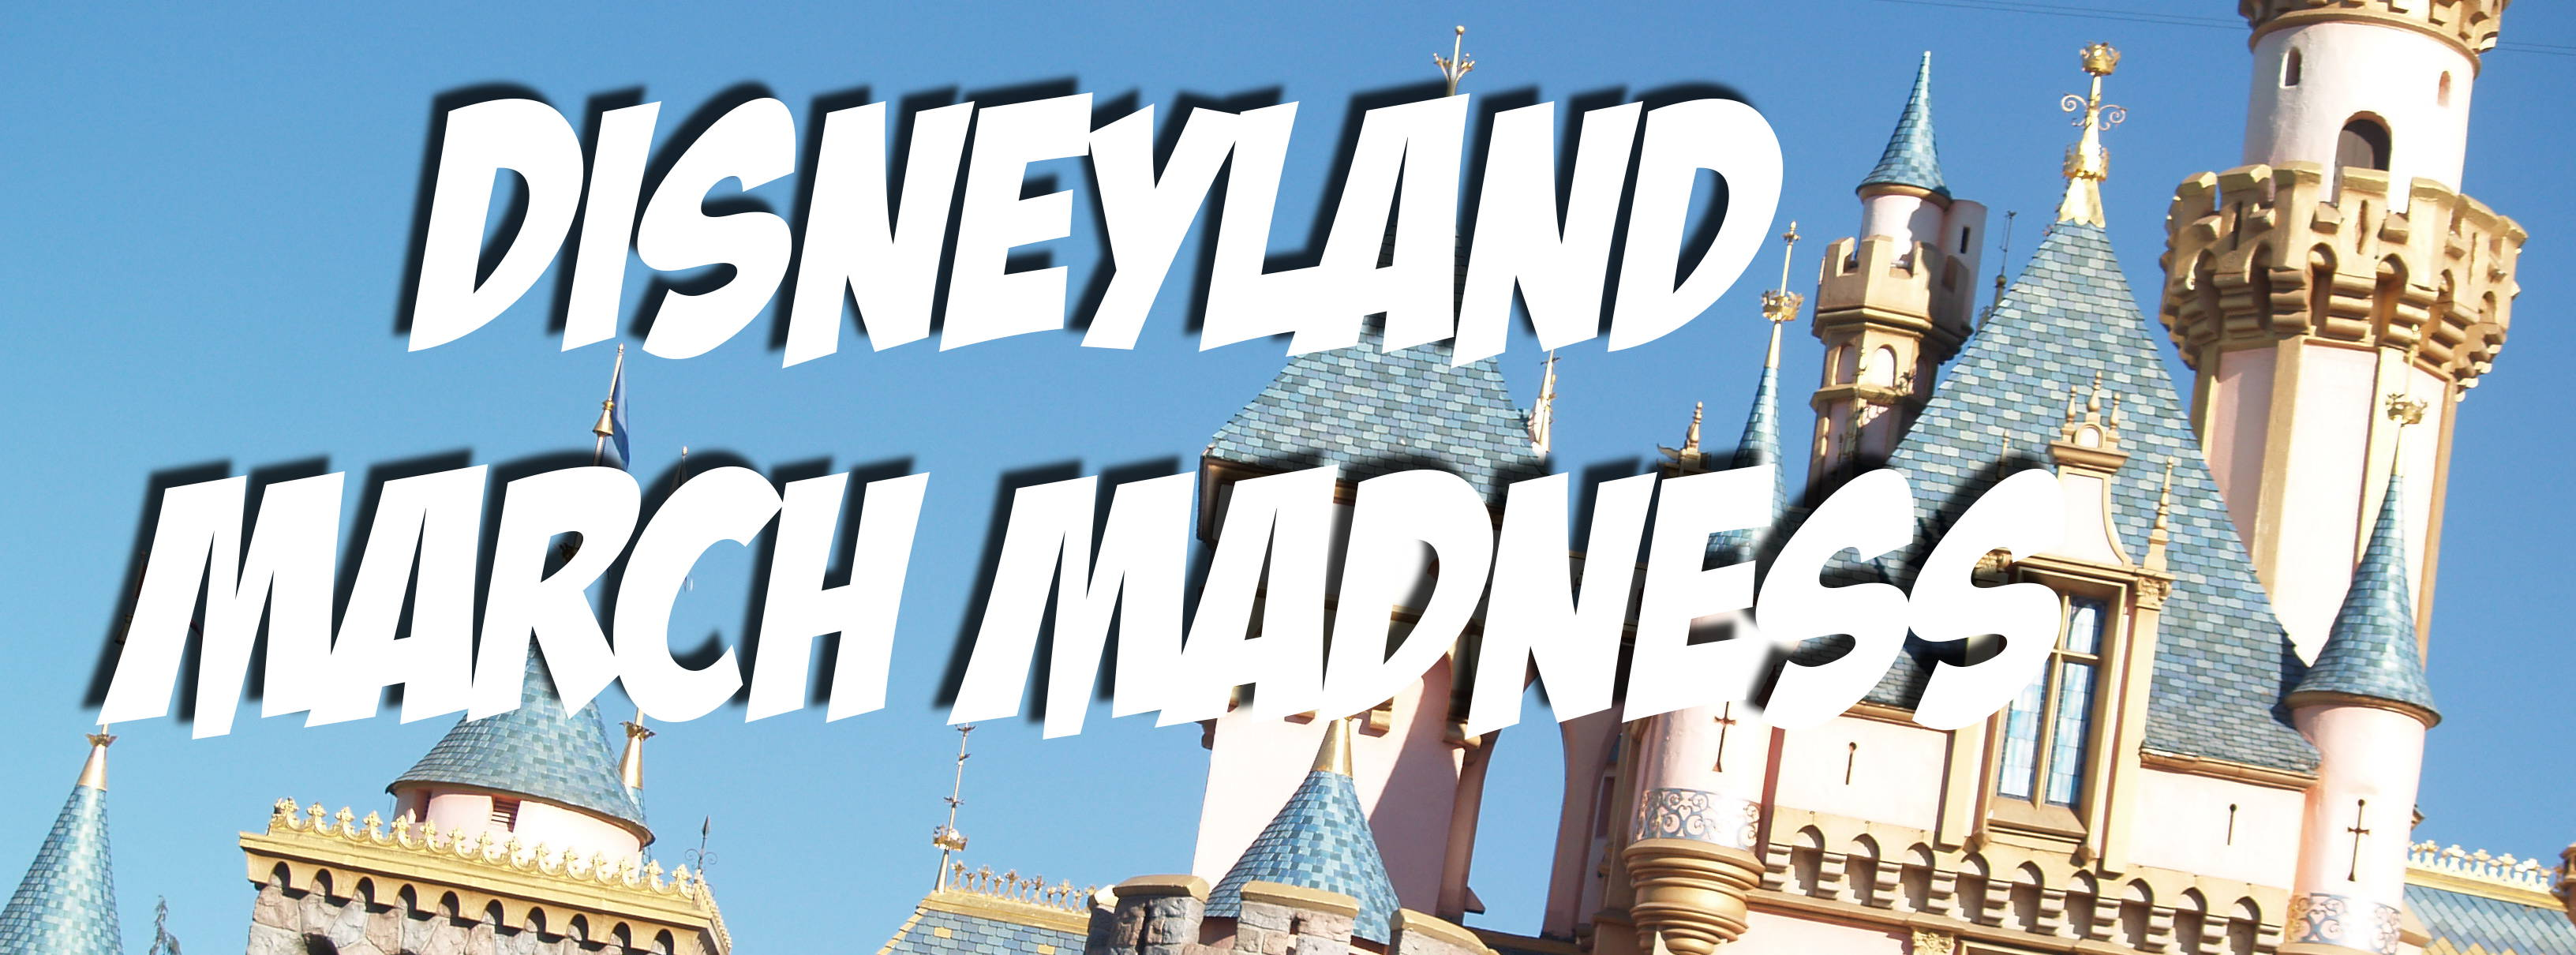 Disneyland March Madness